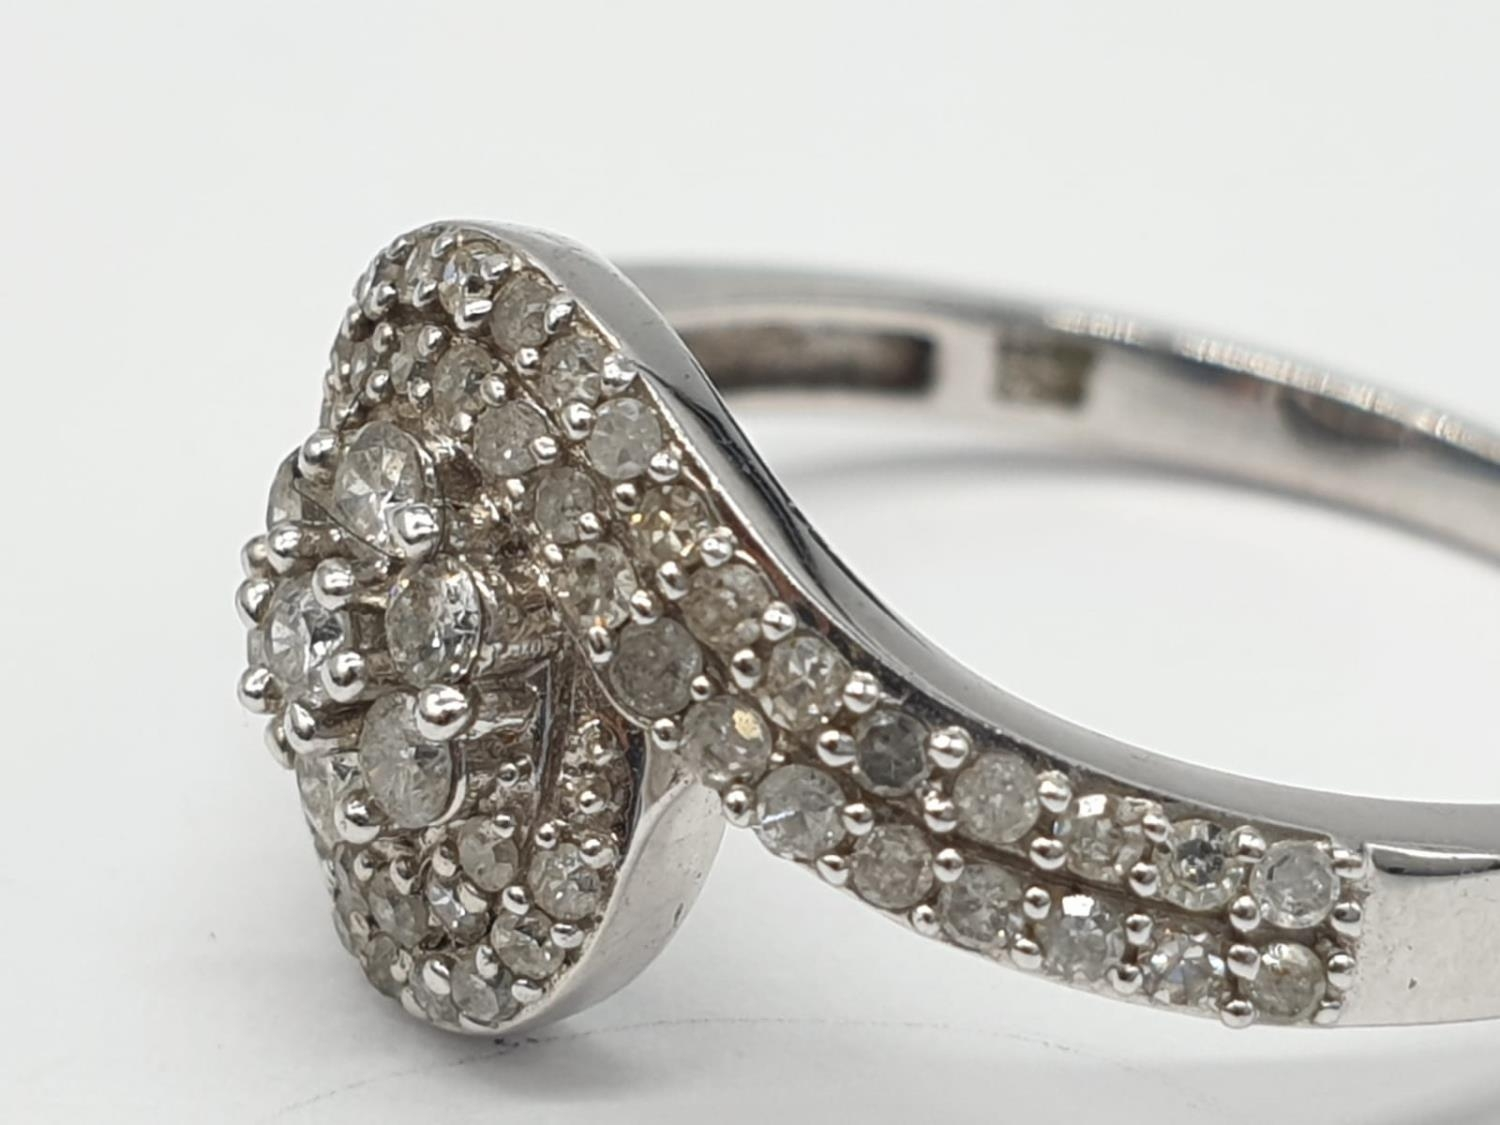 9ct white gold diamond twist cluster ring, 0.50ct diamond approx, weight 2.5g and size P - Image 2 of 7